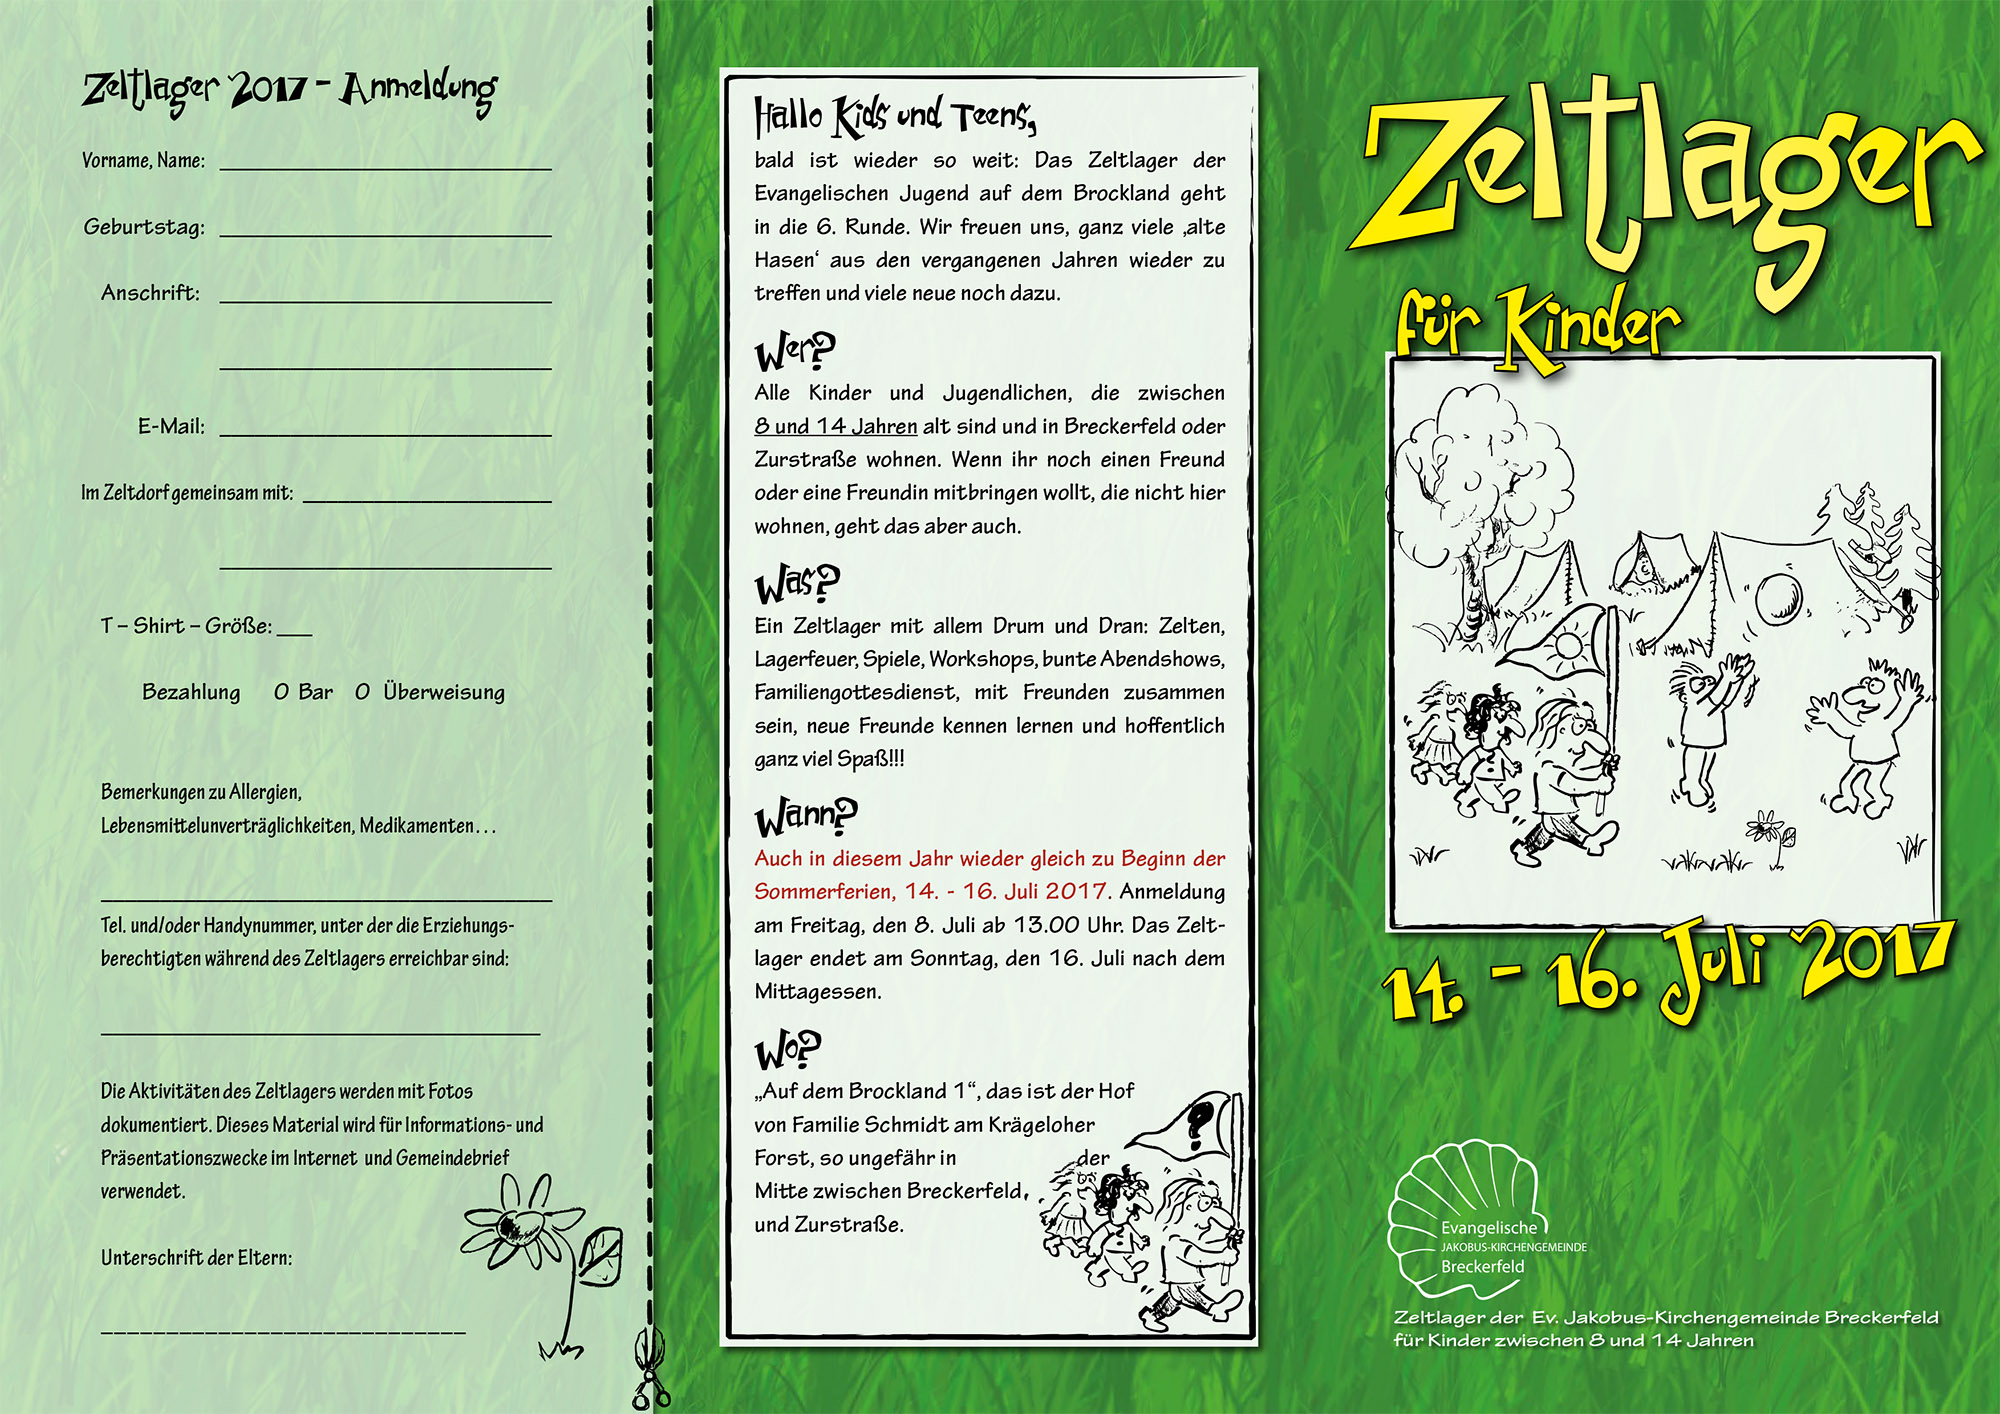 zelt-flyer-2017-web-1a